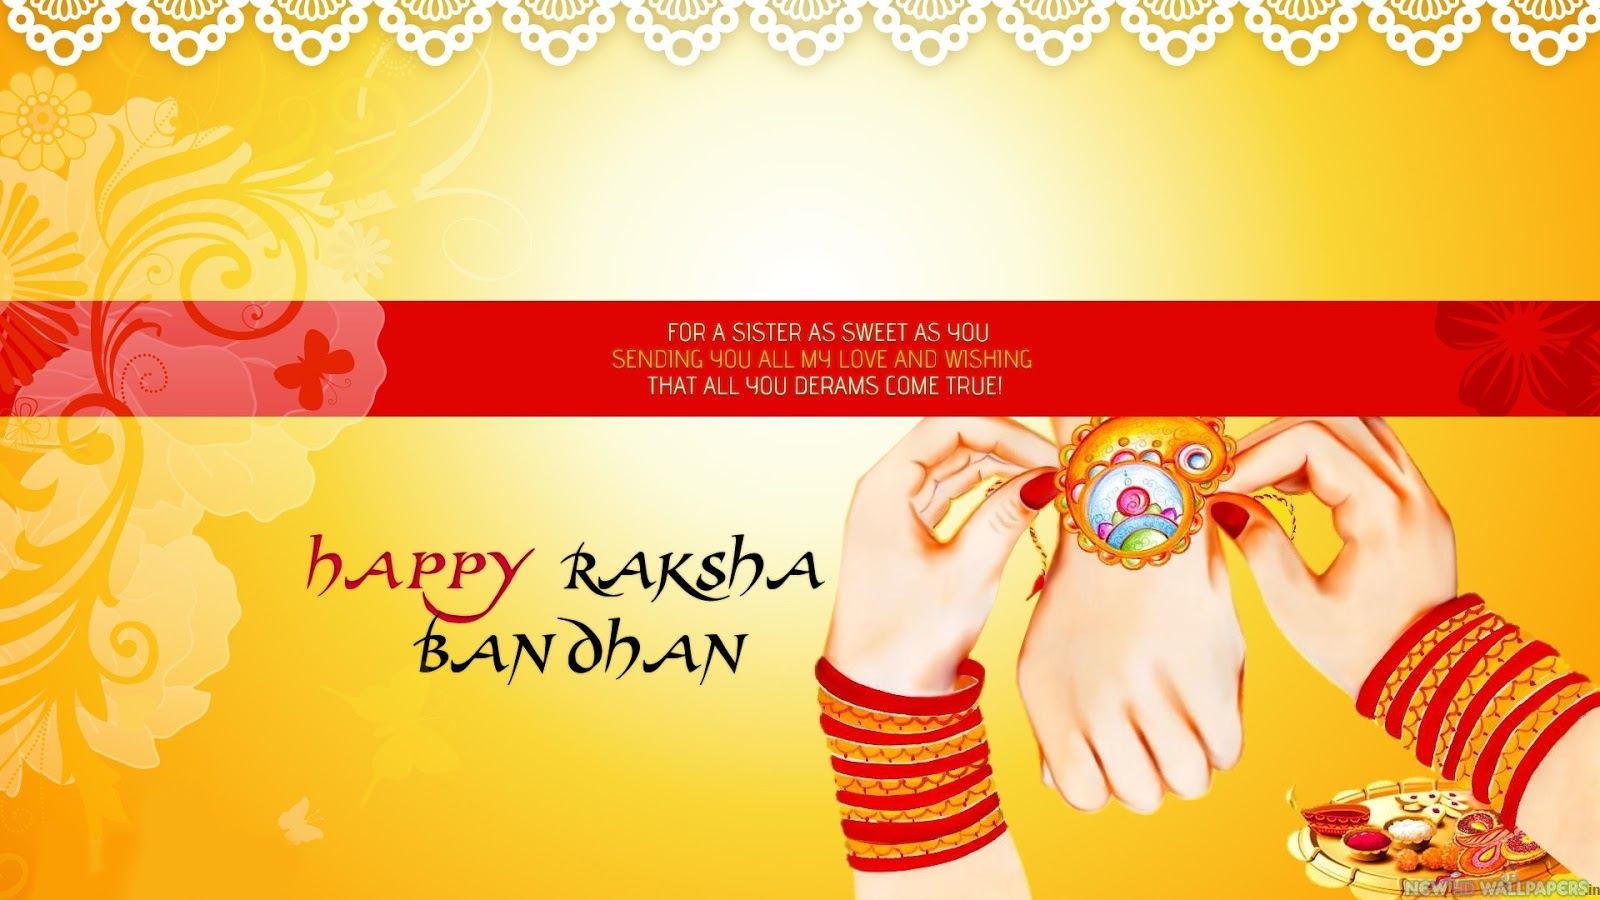 Happy raksha bandhan greeting cards messages with images free happy raksha bandhan greeting cards messages with images free download kristyandbryce Image collections